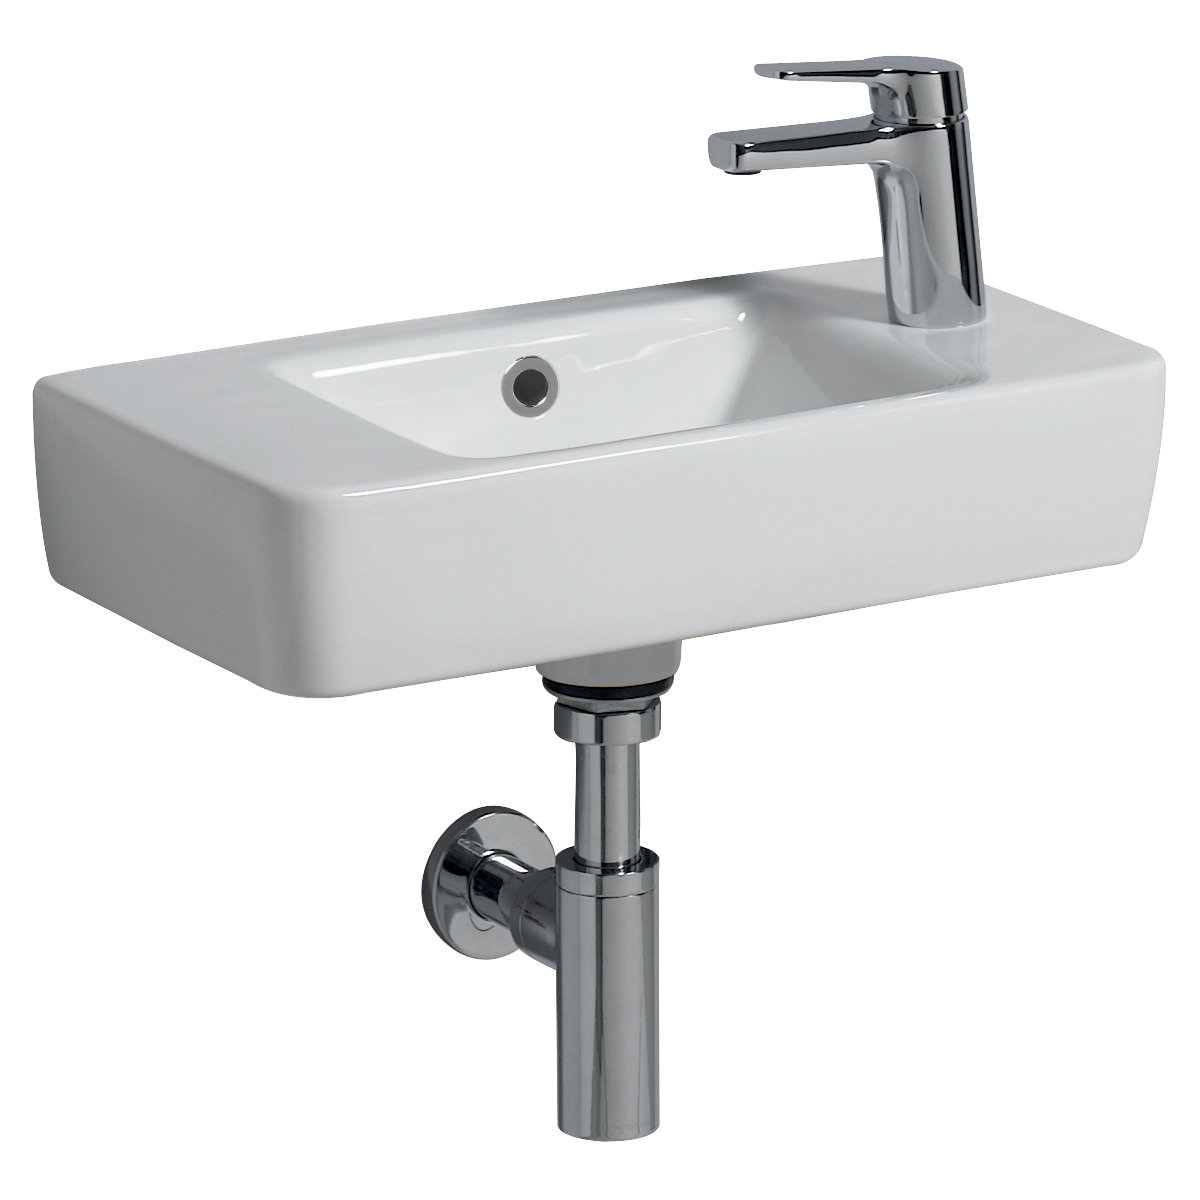 Amazing 250mm 400mm Basin - MN_AQ-40416_Twyford-E200-1-RH-Tap-Hole-500-x-250mm-Washbasin-With-Centre-Bowl6399  Perfect Image Reference_93934.jpg